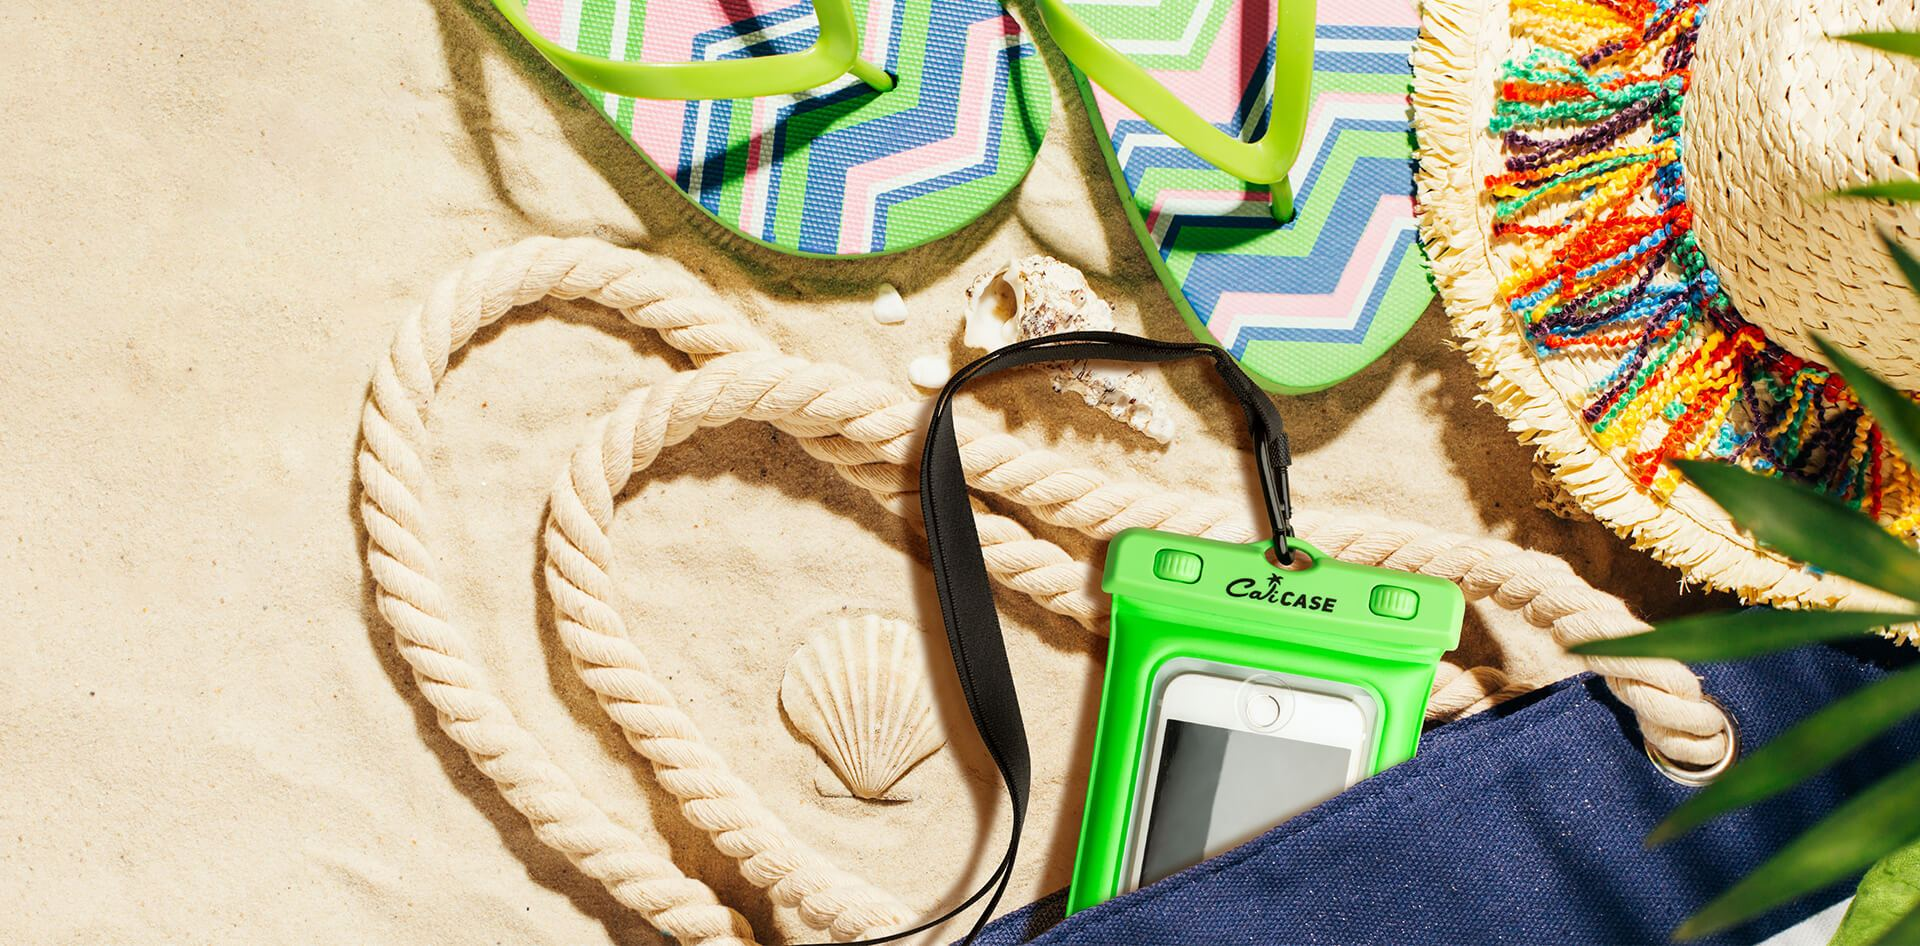 WIN - CaliCase Waterproof Phone Pouches for Your Family Vacation